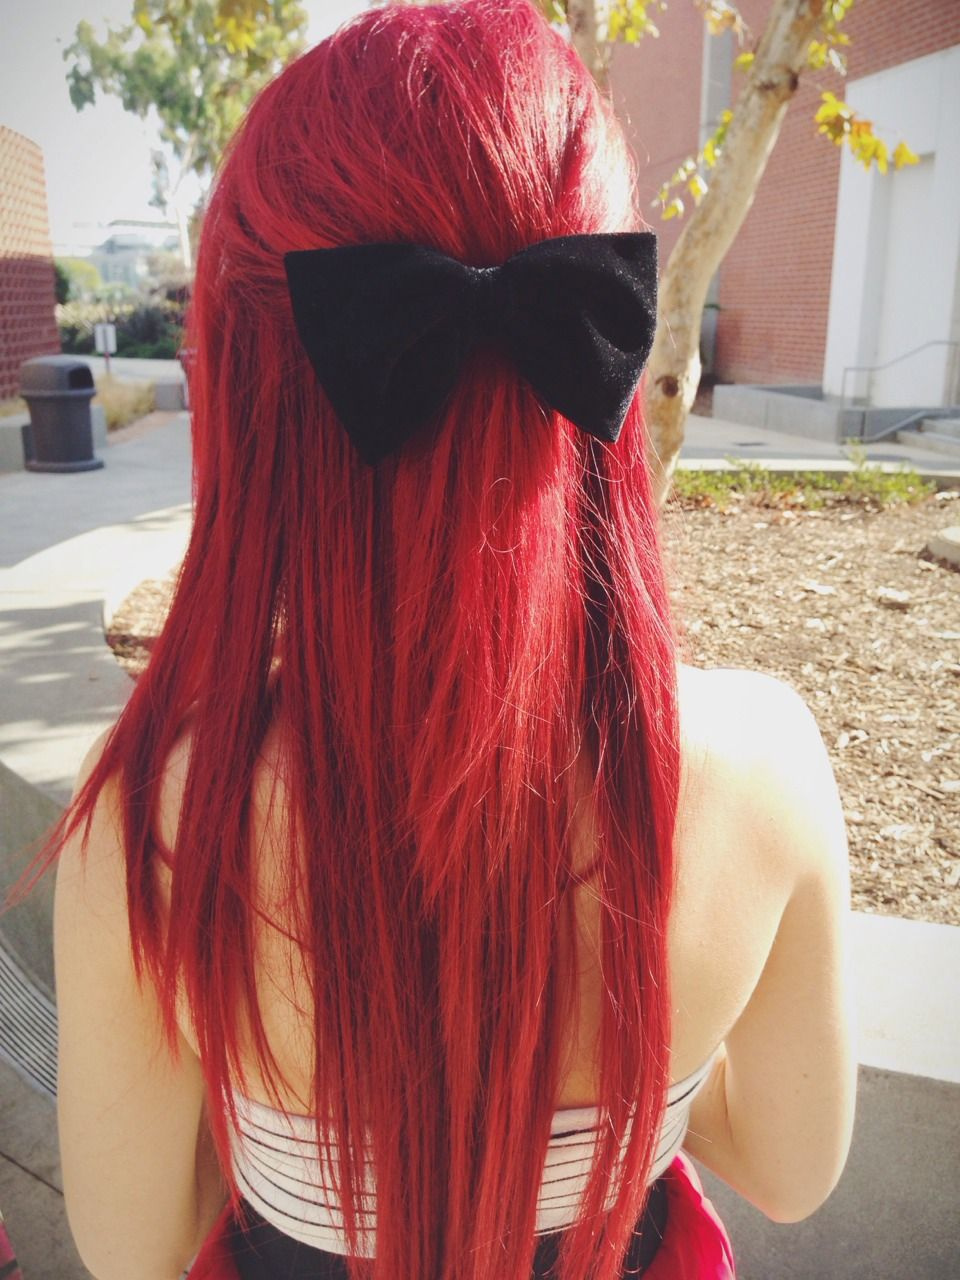 24 dyed hairstyles you need to try | red hairstyles, dye hair and